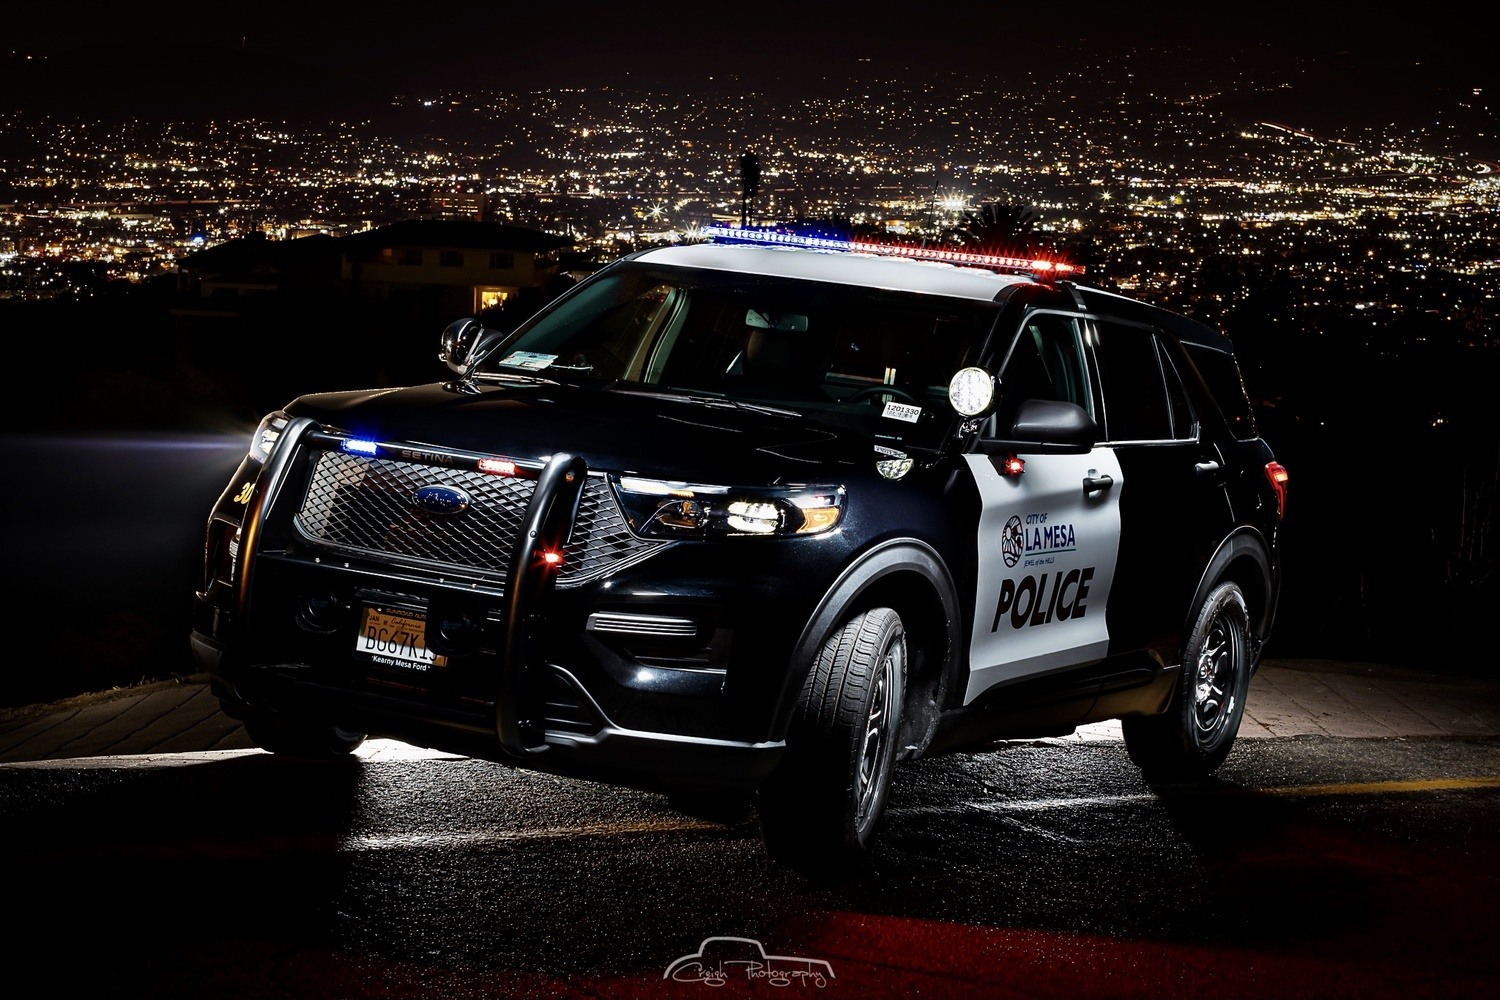 La Mesa Police 2021 Police Utility by Creigh McIntyre